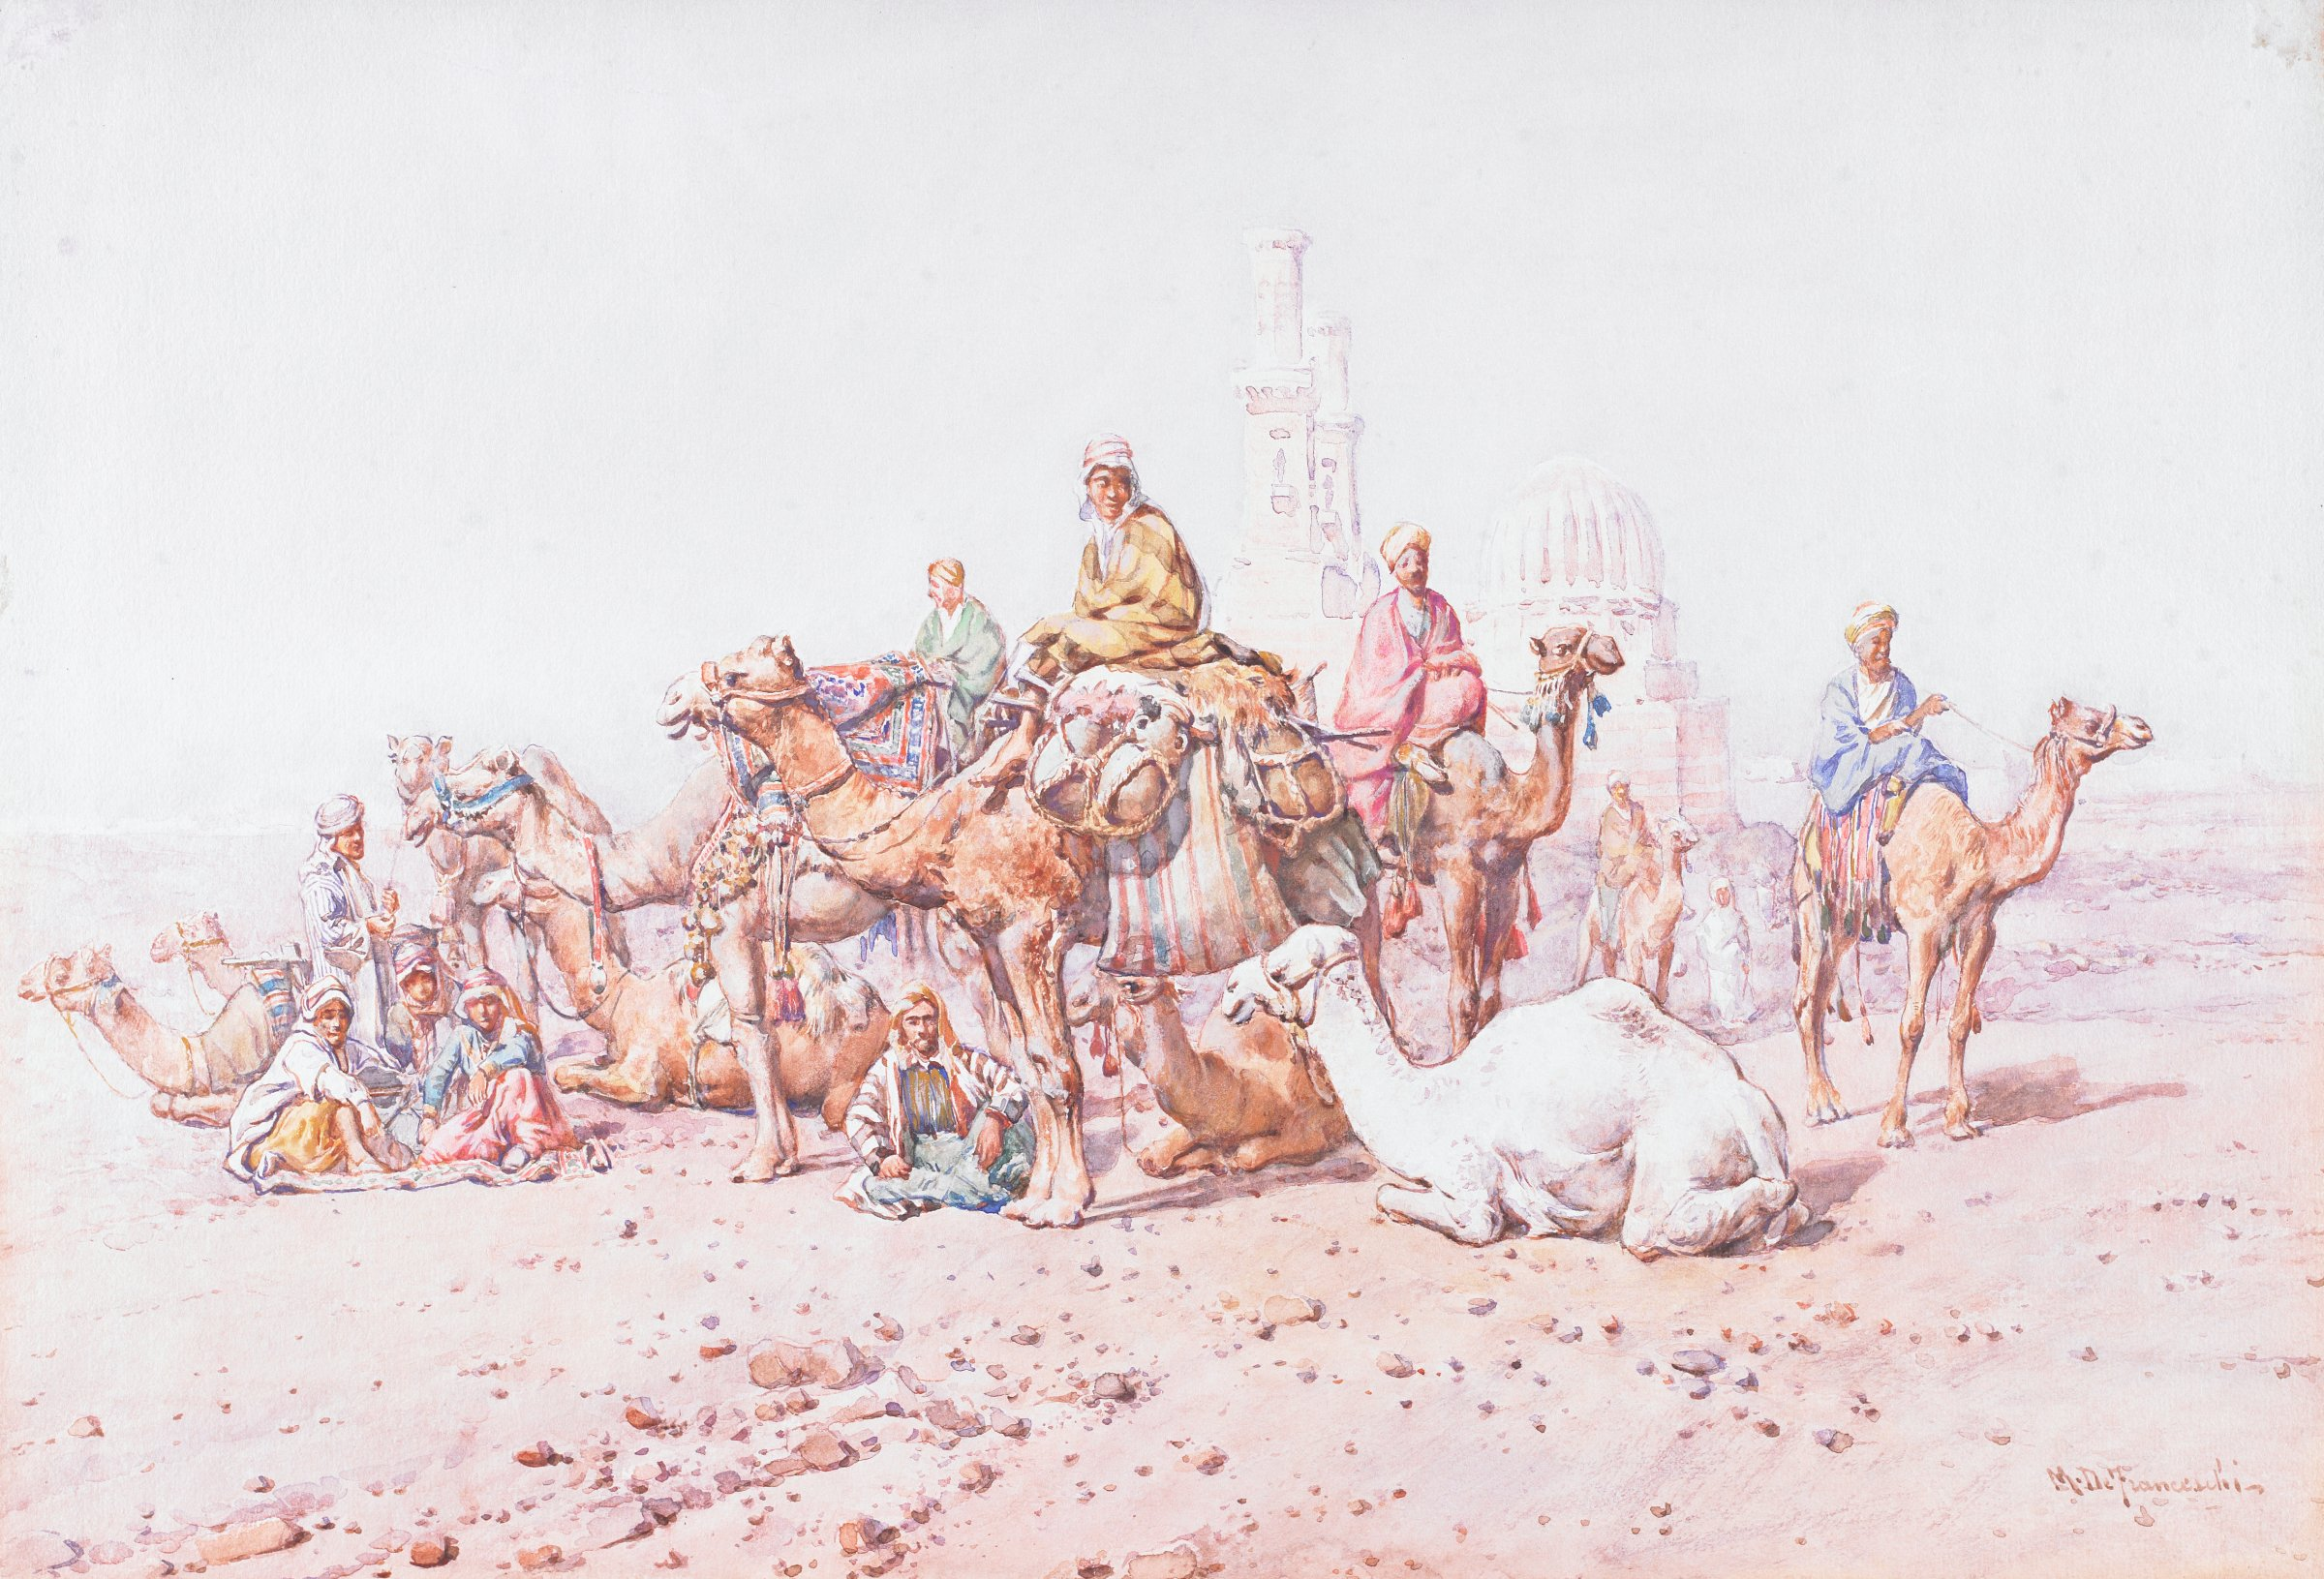 In foreground: rocky soil. In middle ground: approximately eleven camels, with people, standing and resting on ground, with an architectural structure directly behind.